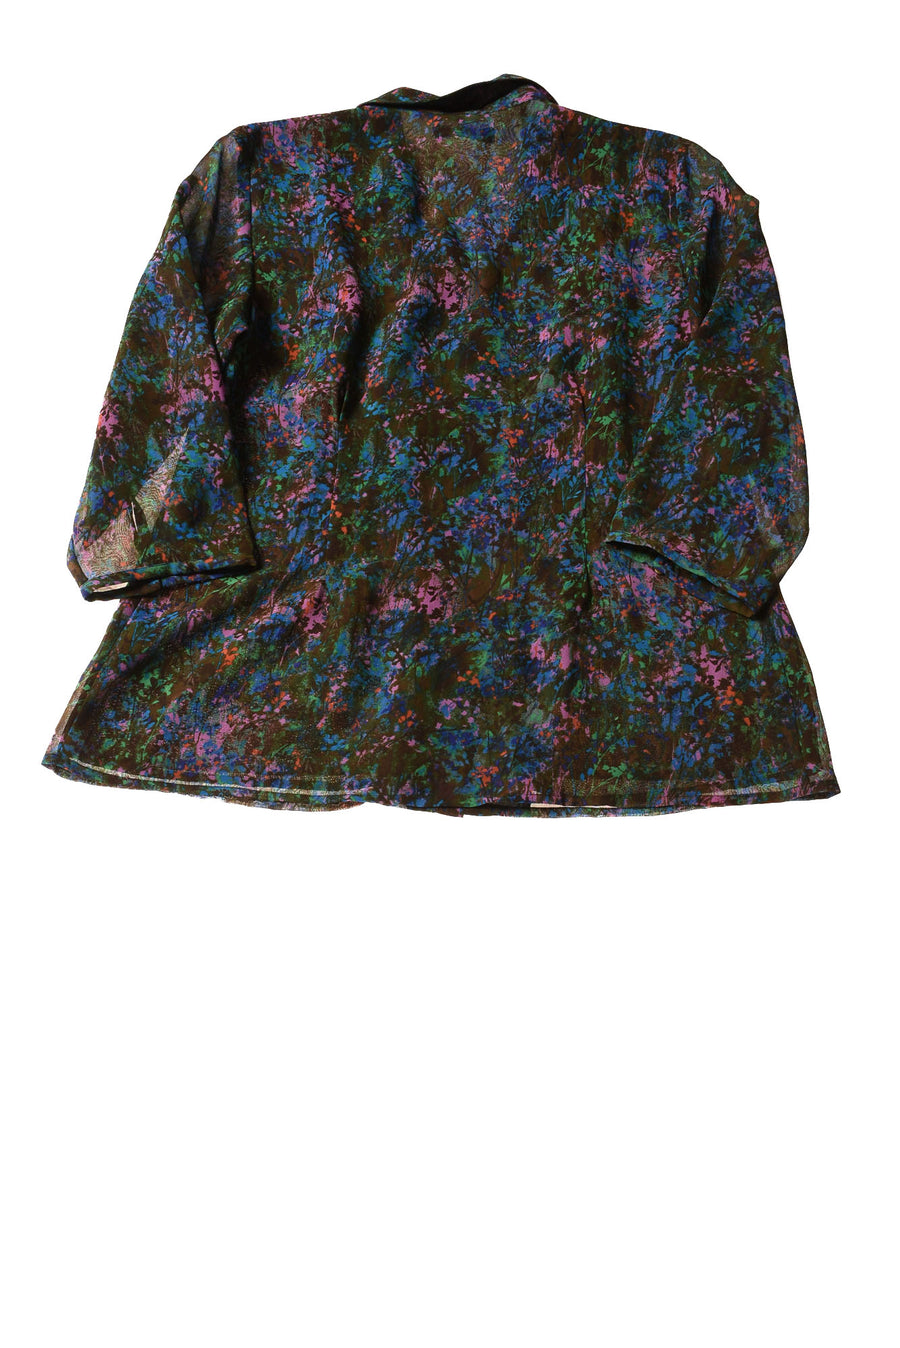 NEW Coldwater Creek Women's Top Small Multi-Color / Print